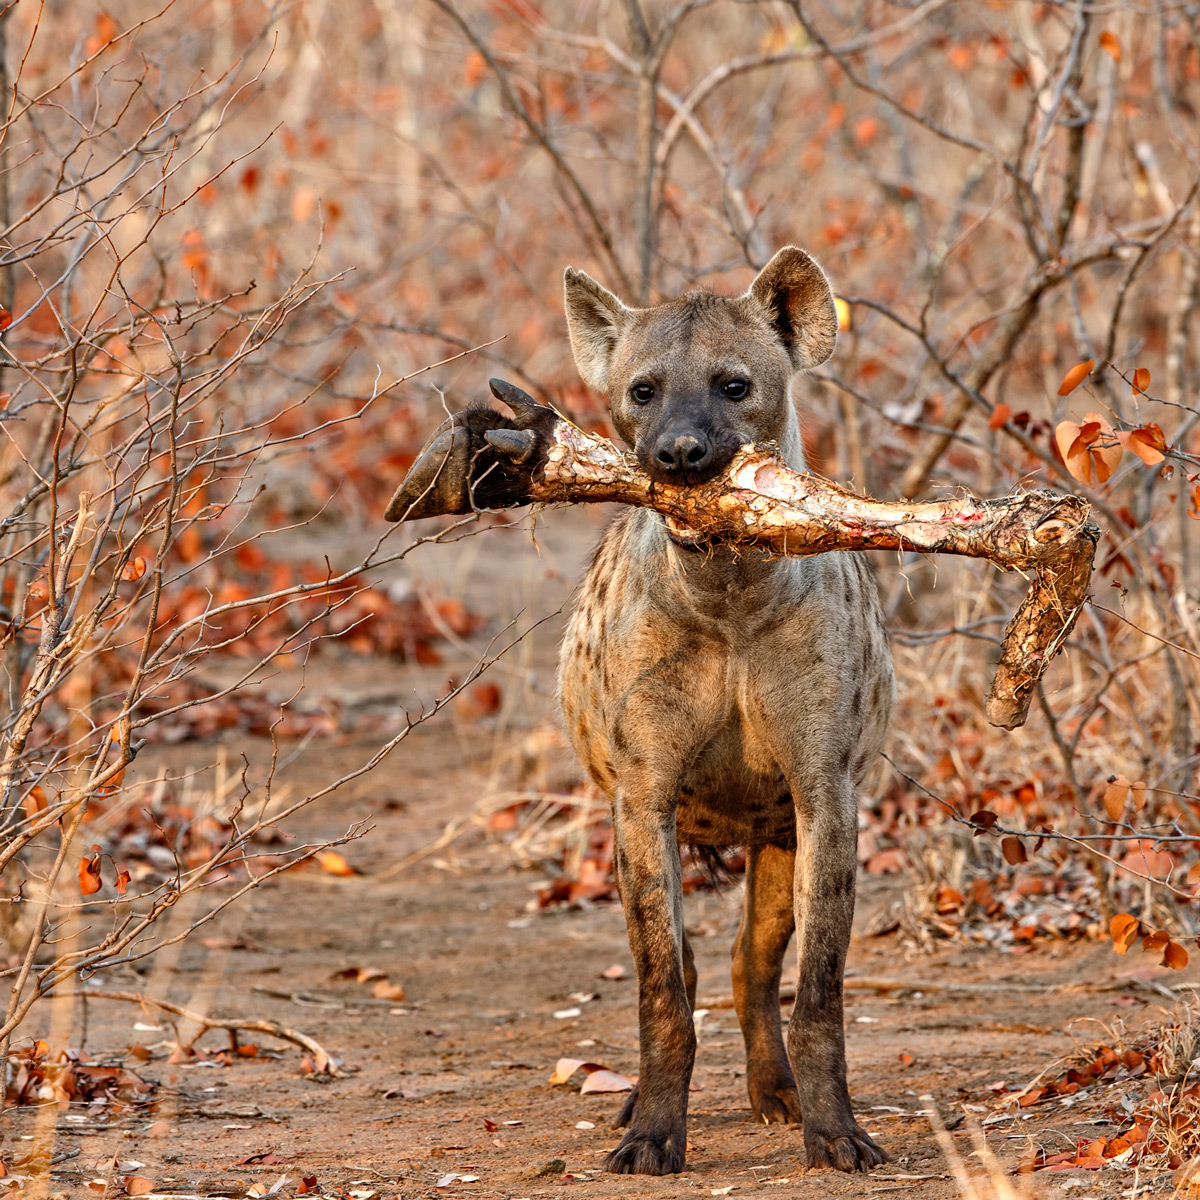 A spotted hyena and his prize in Kruger National Park, South Africa © Hilda le Roux